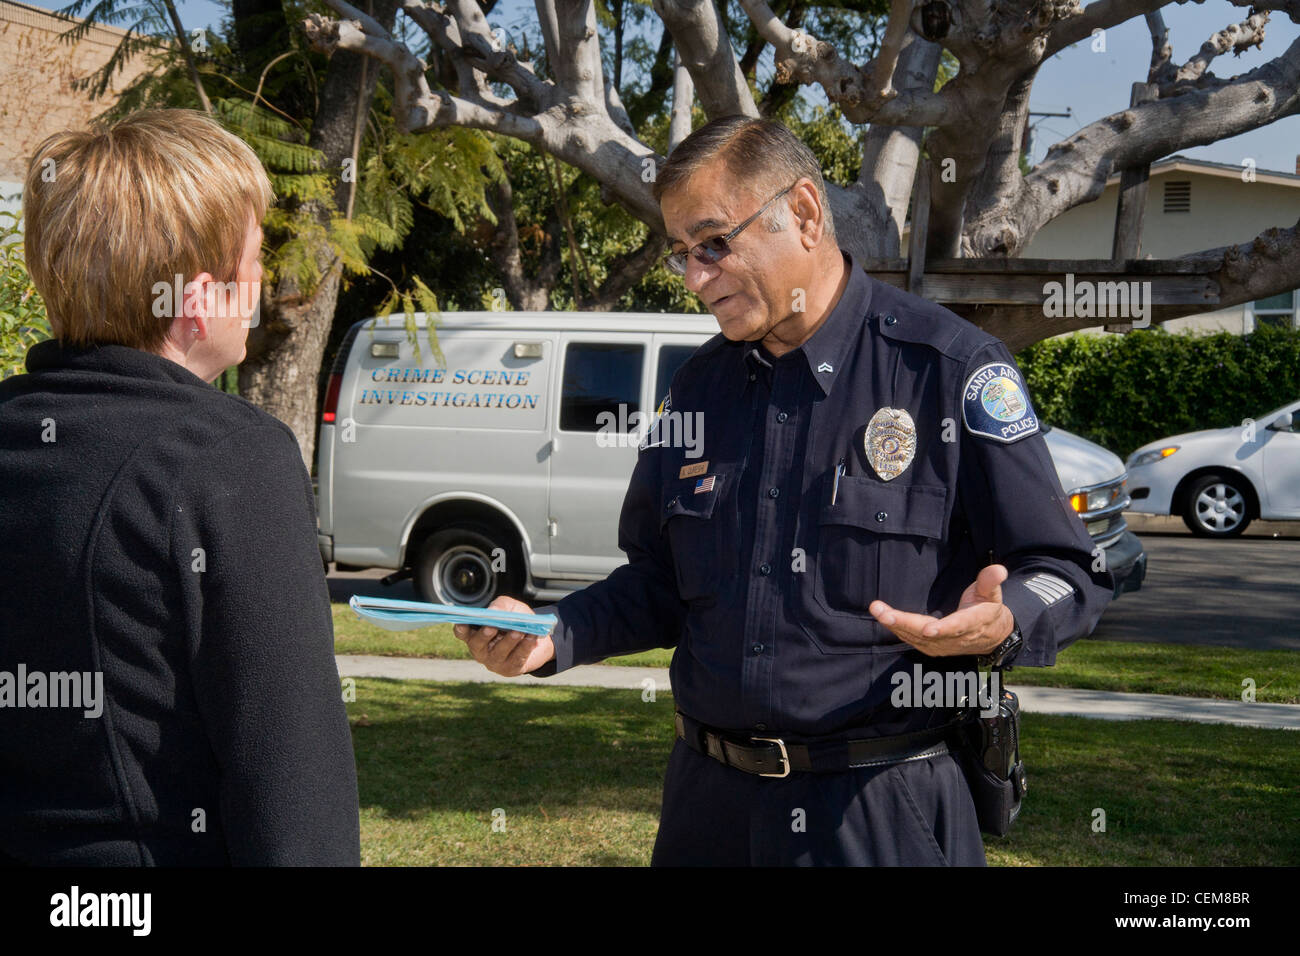 Police Forensic Officer High Resolution Stock Photography And Images Alamy